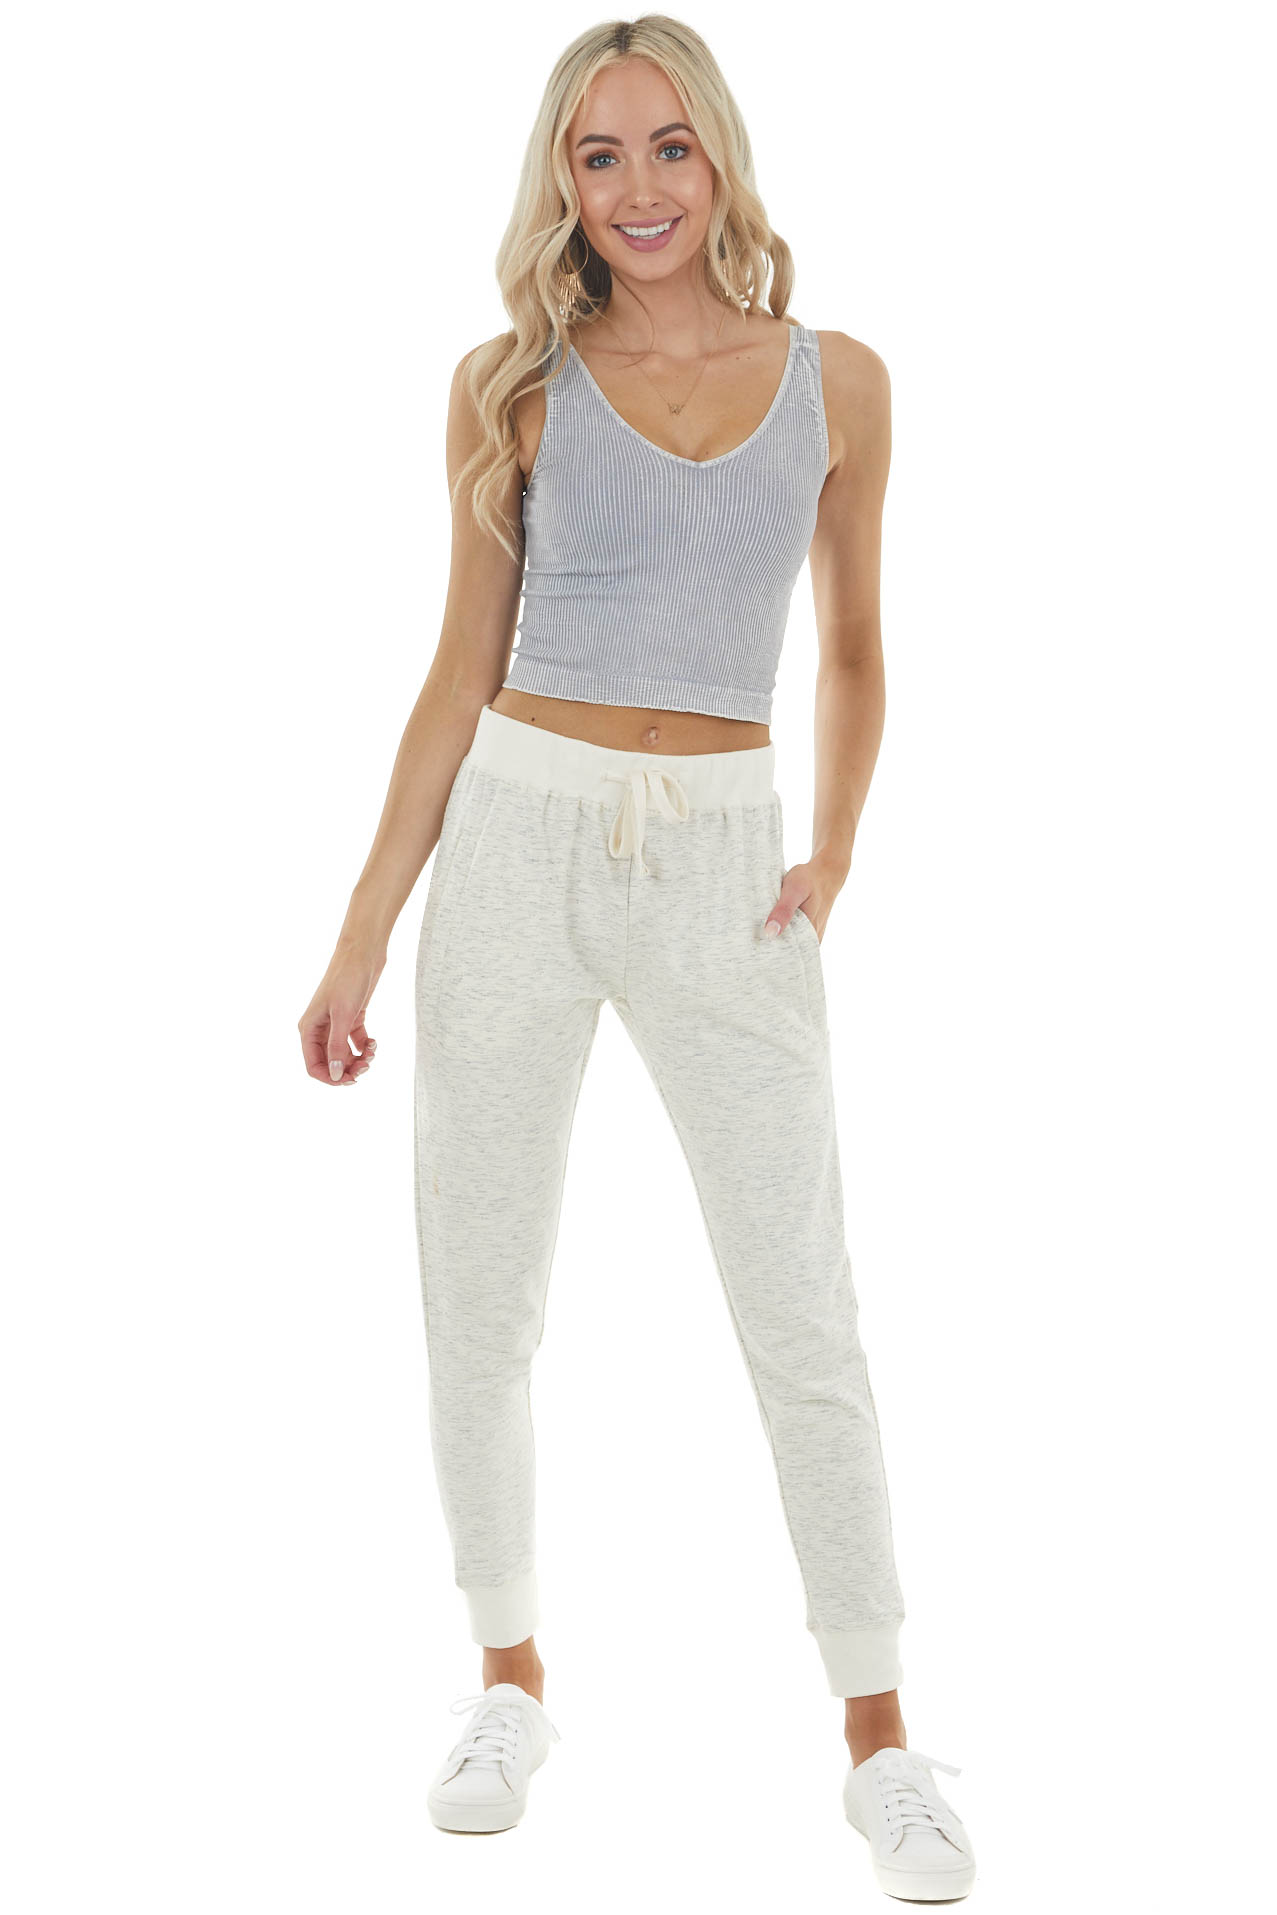 Melange Cream Soft Knit Joggers with Zippered Pockets